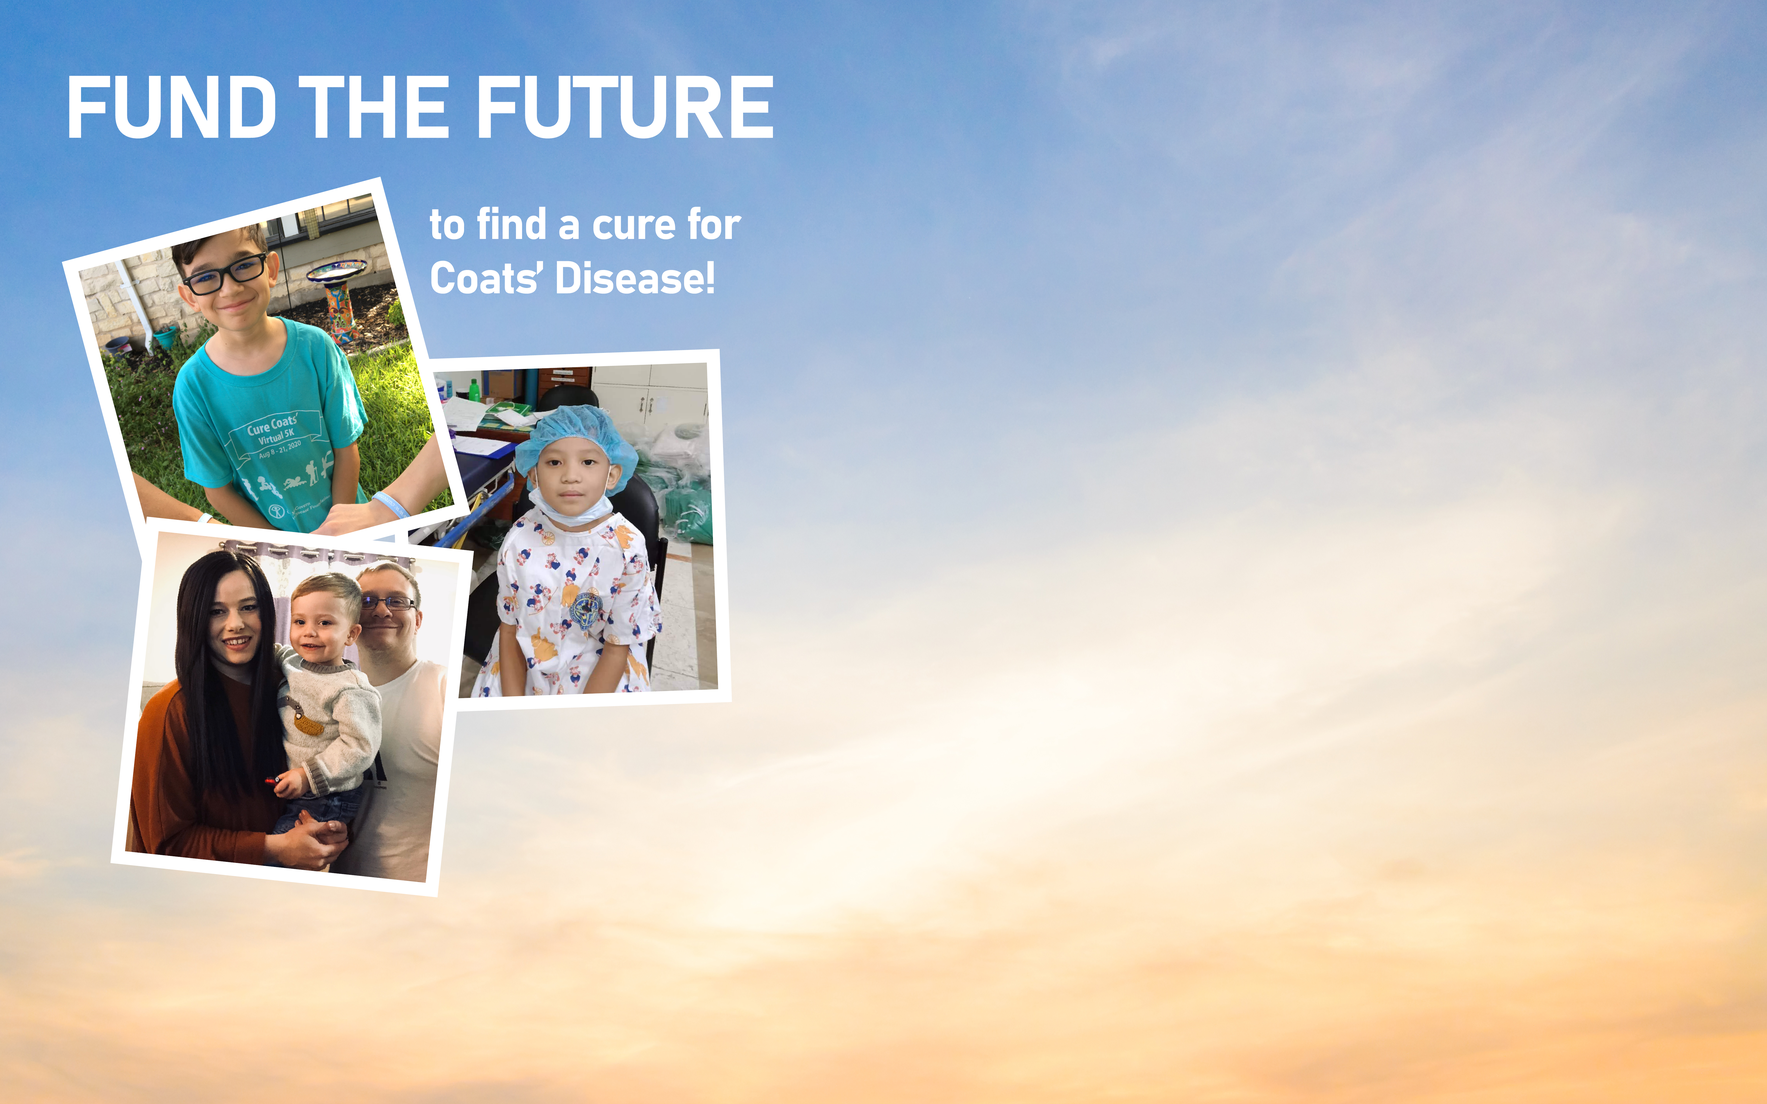 Fund the Future for awareness, research, and a cure for Coats' Disease image